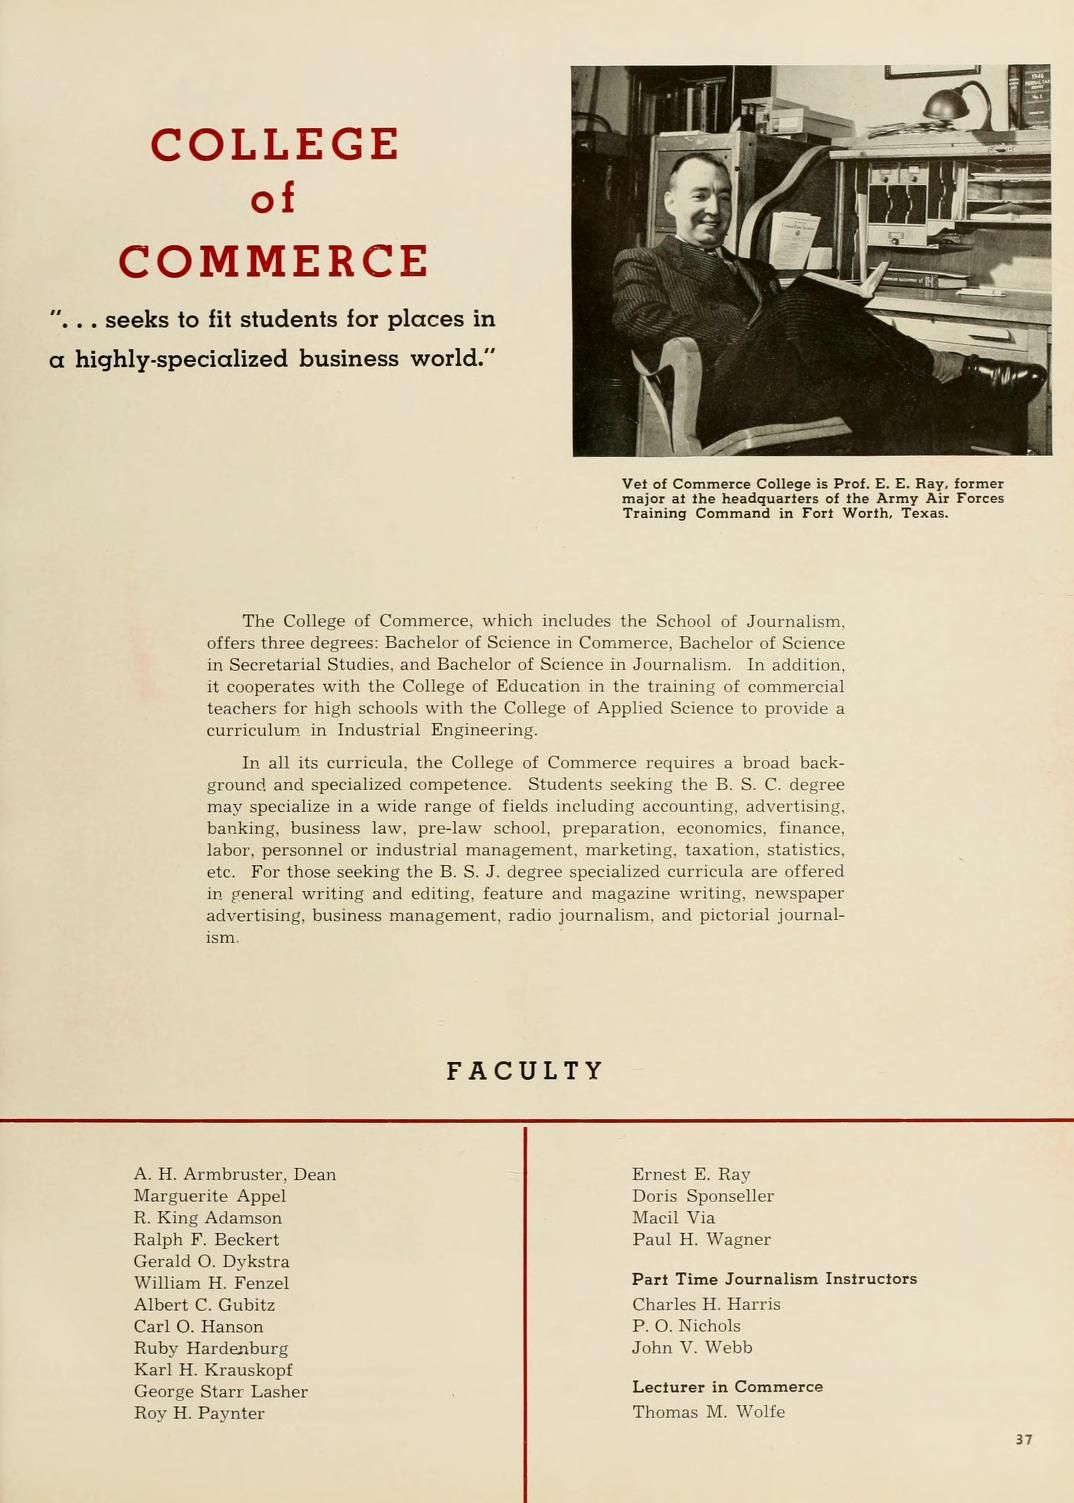 """Athena yearbook, 1946. """"College of Commerce"""" included the School of Journalism and offered the BSJ. :: Ohio University Archives"""